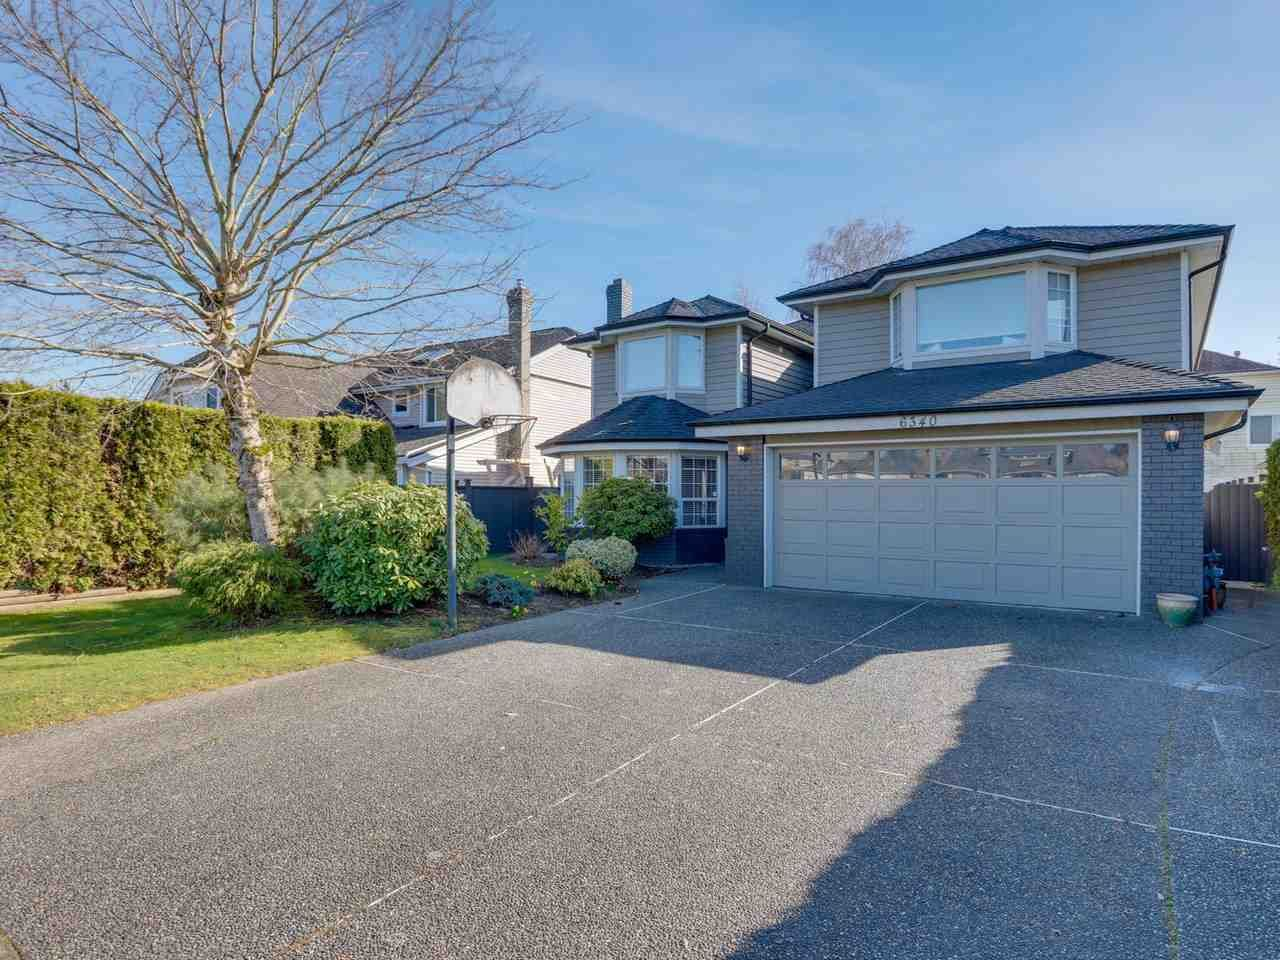 Main Photo: 6340 HOLLY PARK DRIVE in Delta: Holly House for sale (Ladner)  : MLS®# R2558311